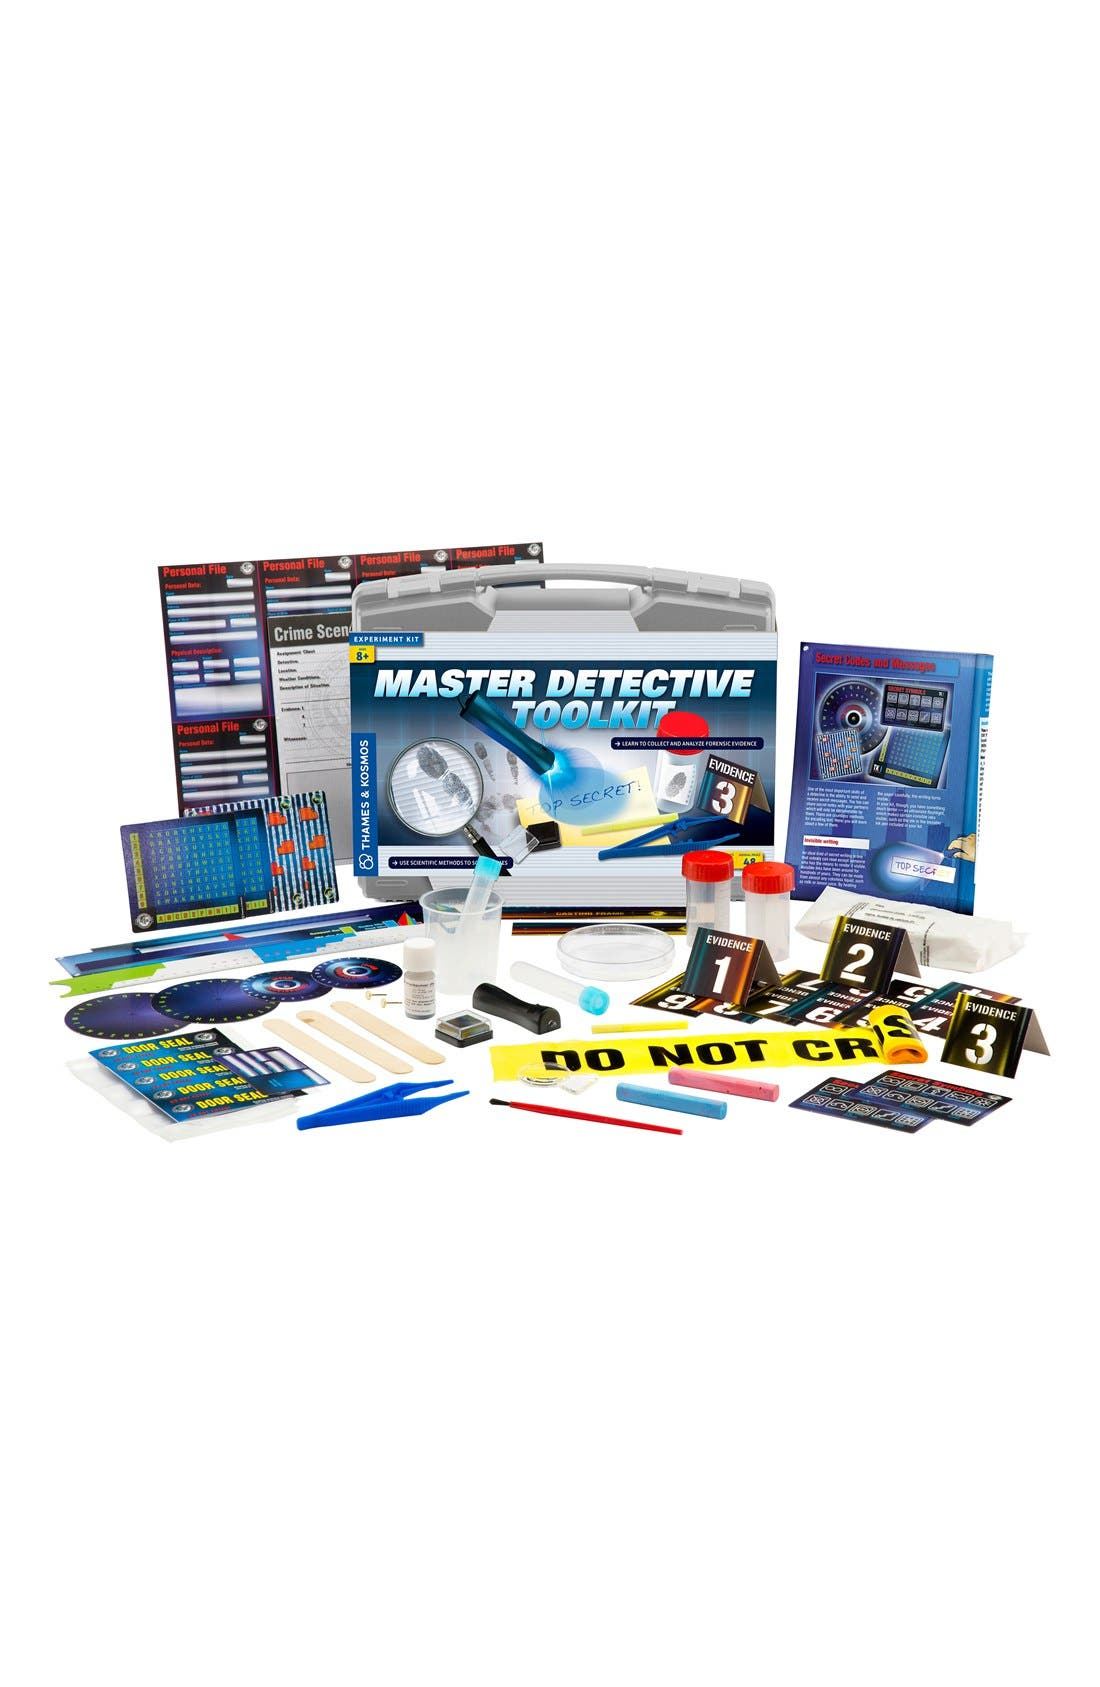 'Master Detective Toolkit' Experiment Kit,                             Alternate thumbnail 6, color,                             GREY